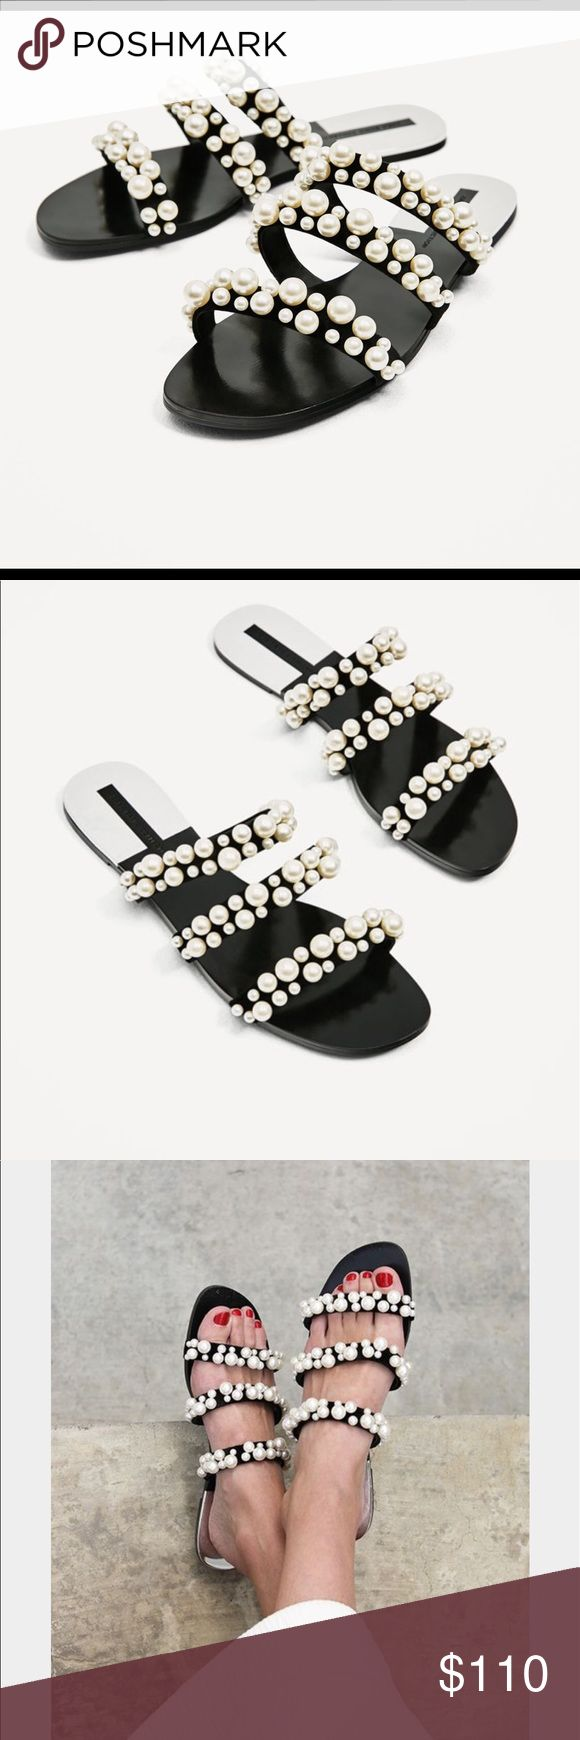 Zara Pearl Sandals- 37- New- SOLD OUT Brand new Zara pearl slide sandals. These have sold out online and are a blogger favorite! Incredibly comfortable, well made and true to size (size 37). The bottom is bendable and a rubber like material. Please ask any questions if you have them! Zara Shoes Sandals